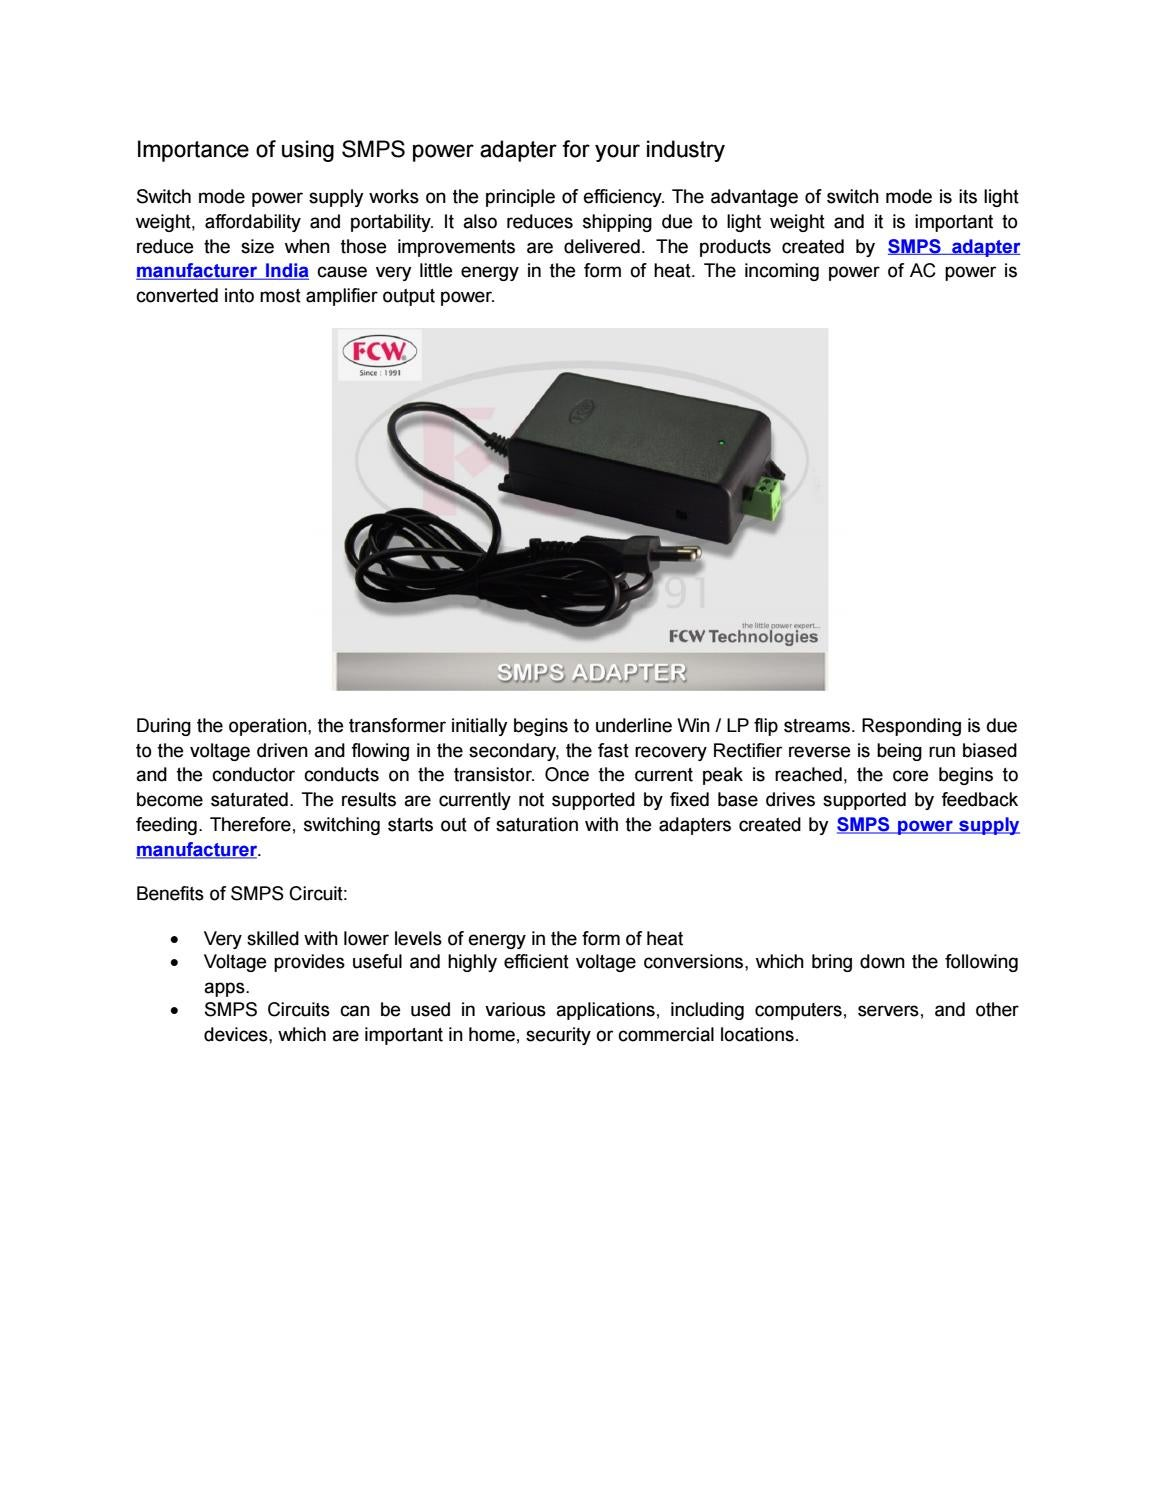 Importance of using SMPS power adapter for your industry by